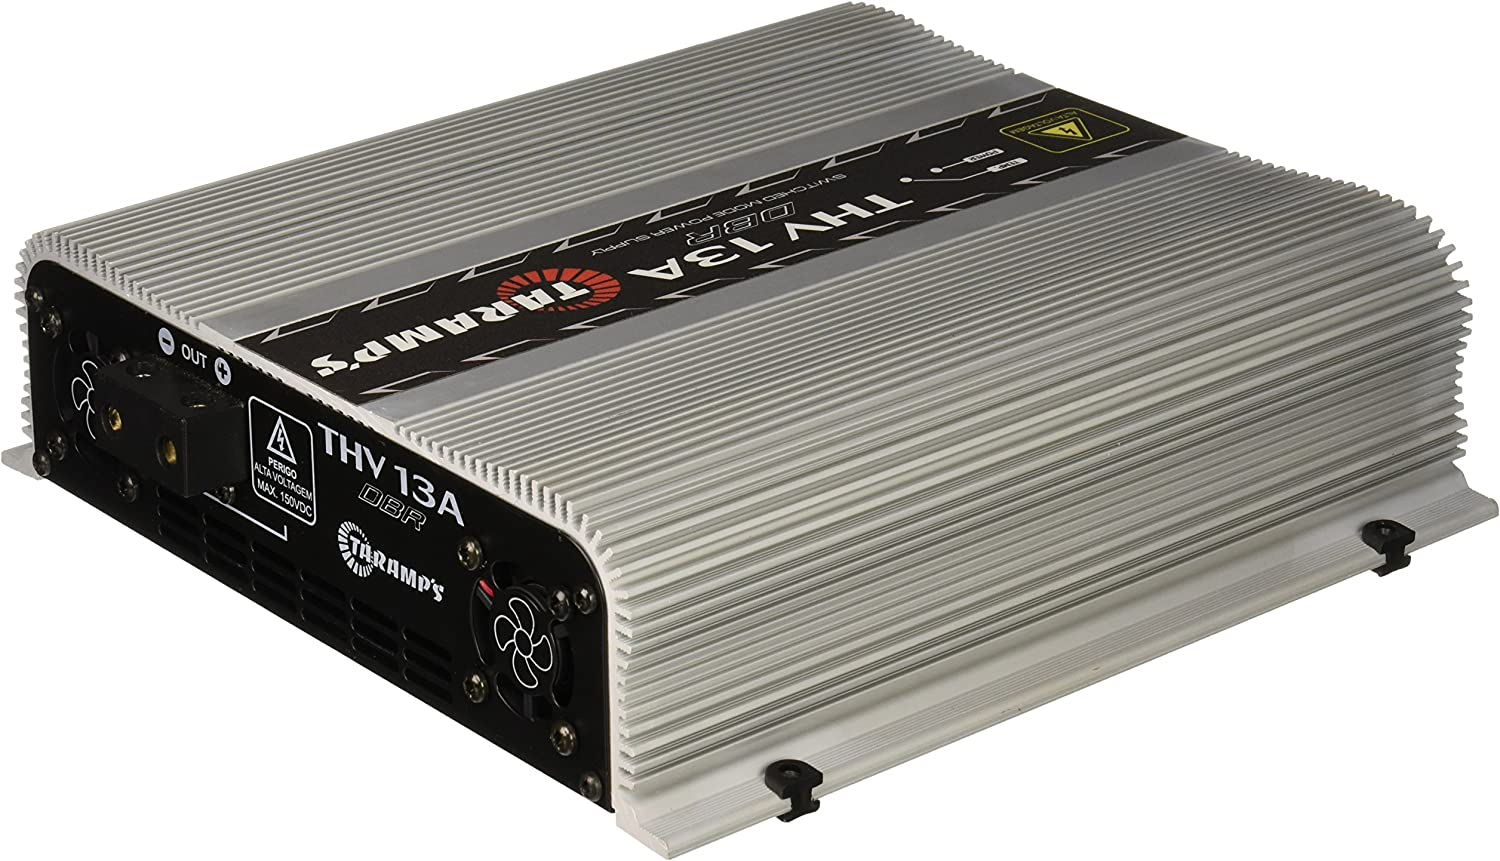 Taramps THV13A 13W High Voltage Amplifier Power Supply